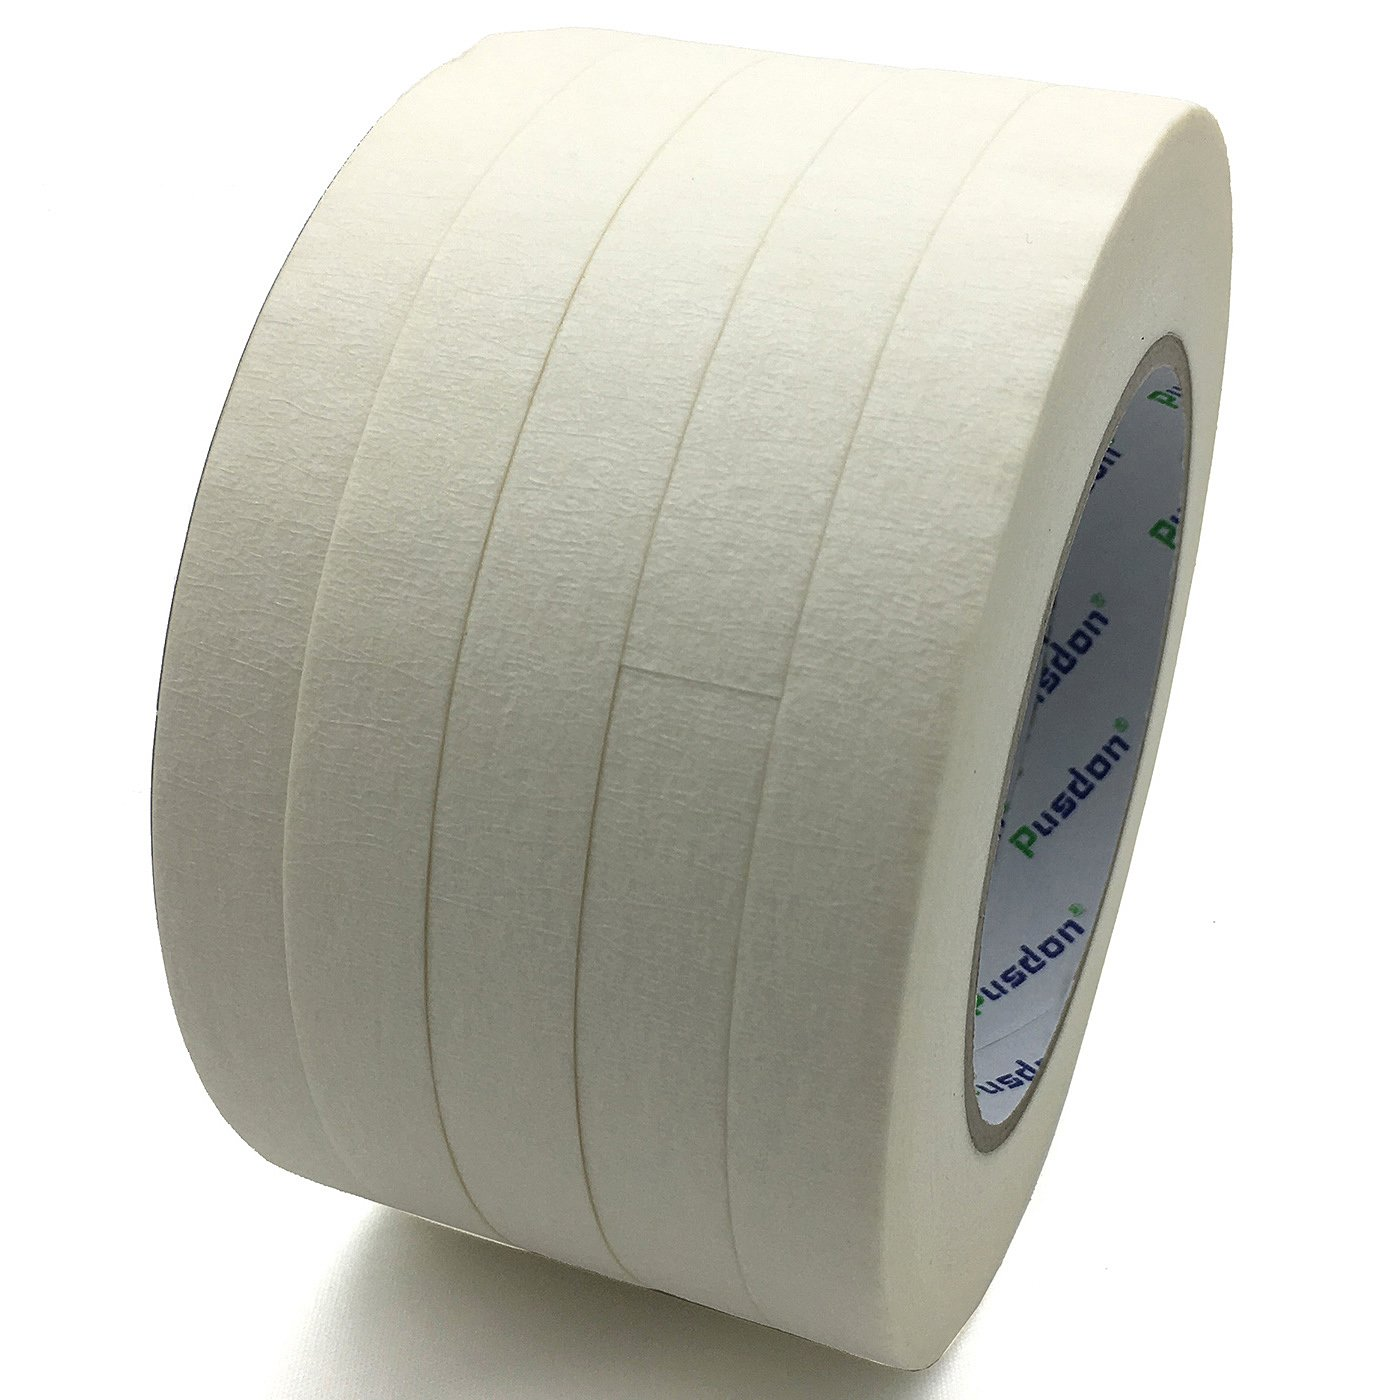 Pusdon Masking Tape, White, Pack of 5, Each 1/2-Inch x 60 Yards (13mm x 55m)